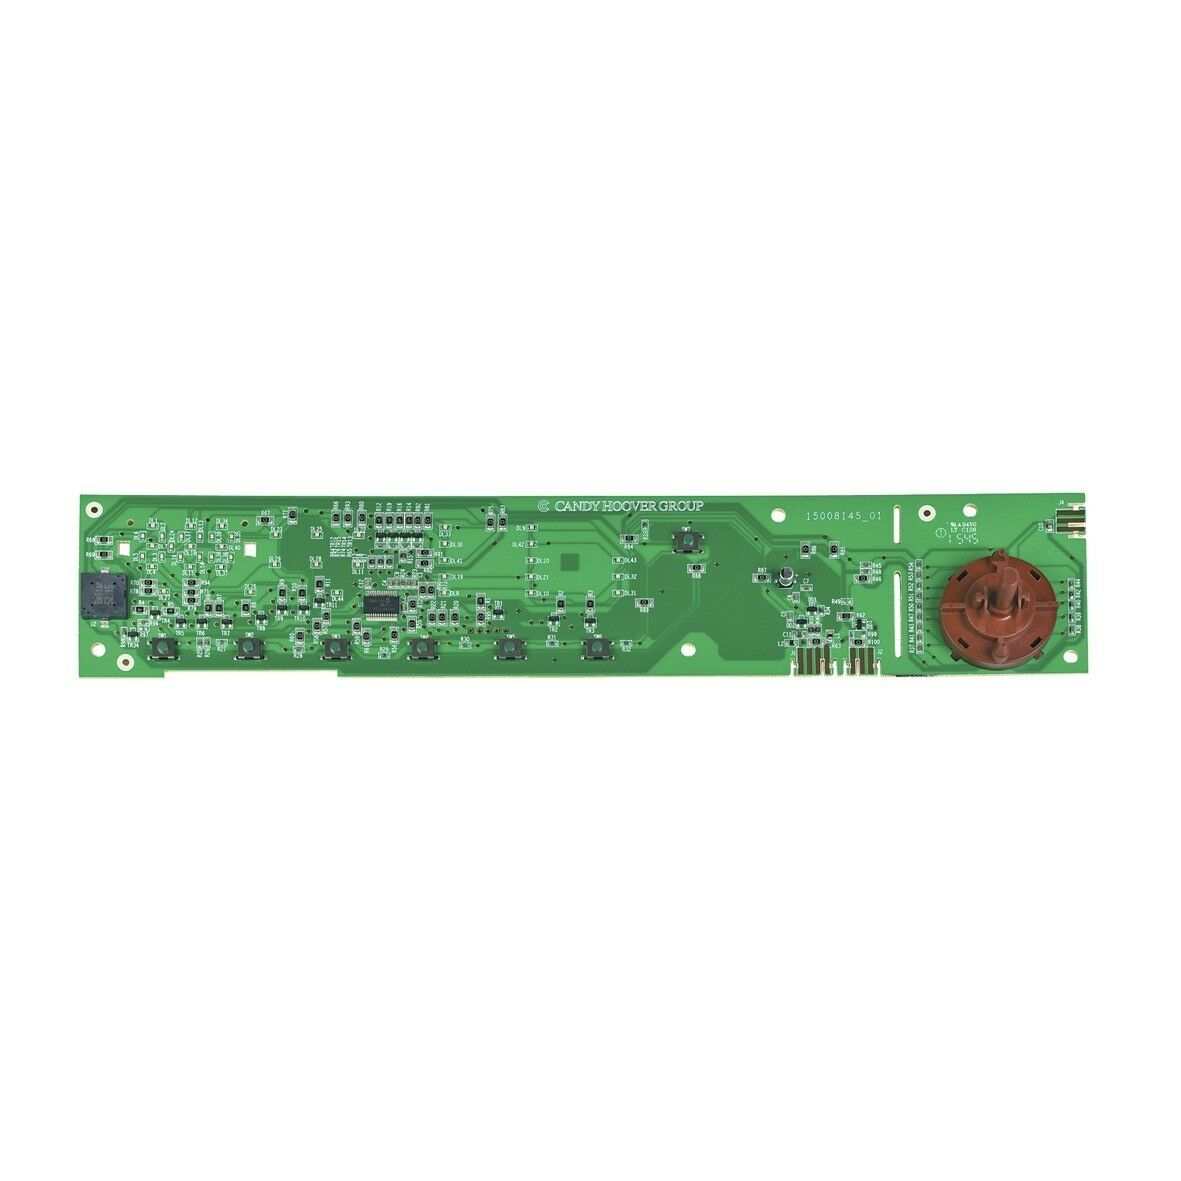 Control Circuit Board Panel Washing Machine Candy Hoover 41042092 Module Pcb On Off Dishwasher Printed Original 1 Of 2 See More